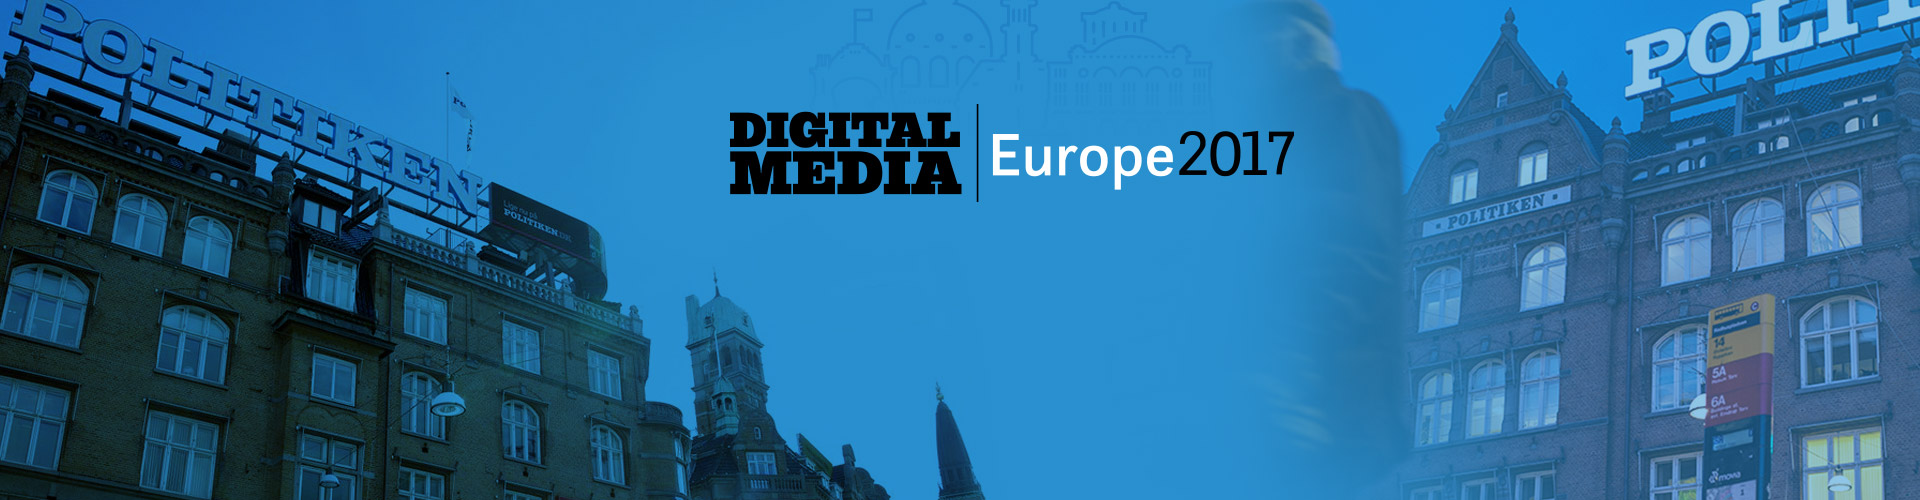 PageSuite to Exhibit at Digital Media Europe in Copenhagen